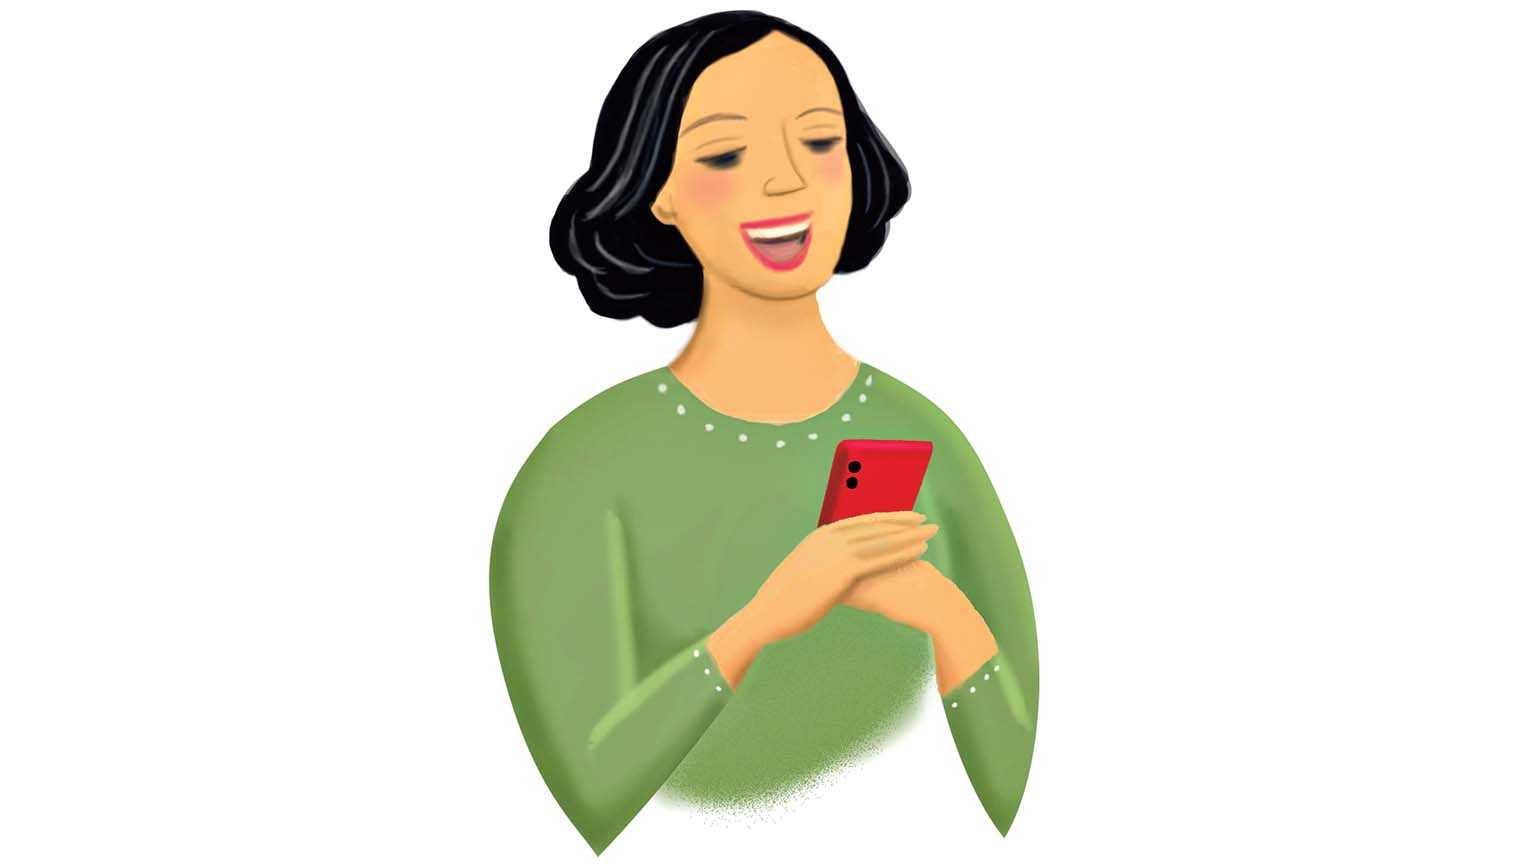 An illustration of a woman laughing at her cellphone; Illustration by Coco Masuda